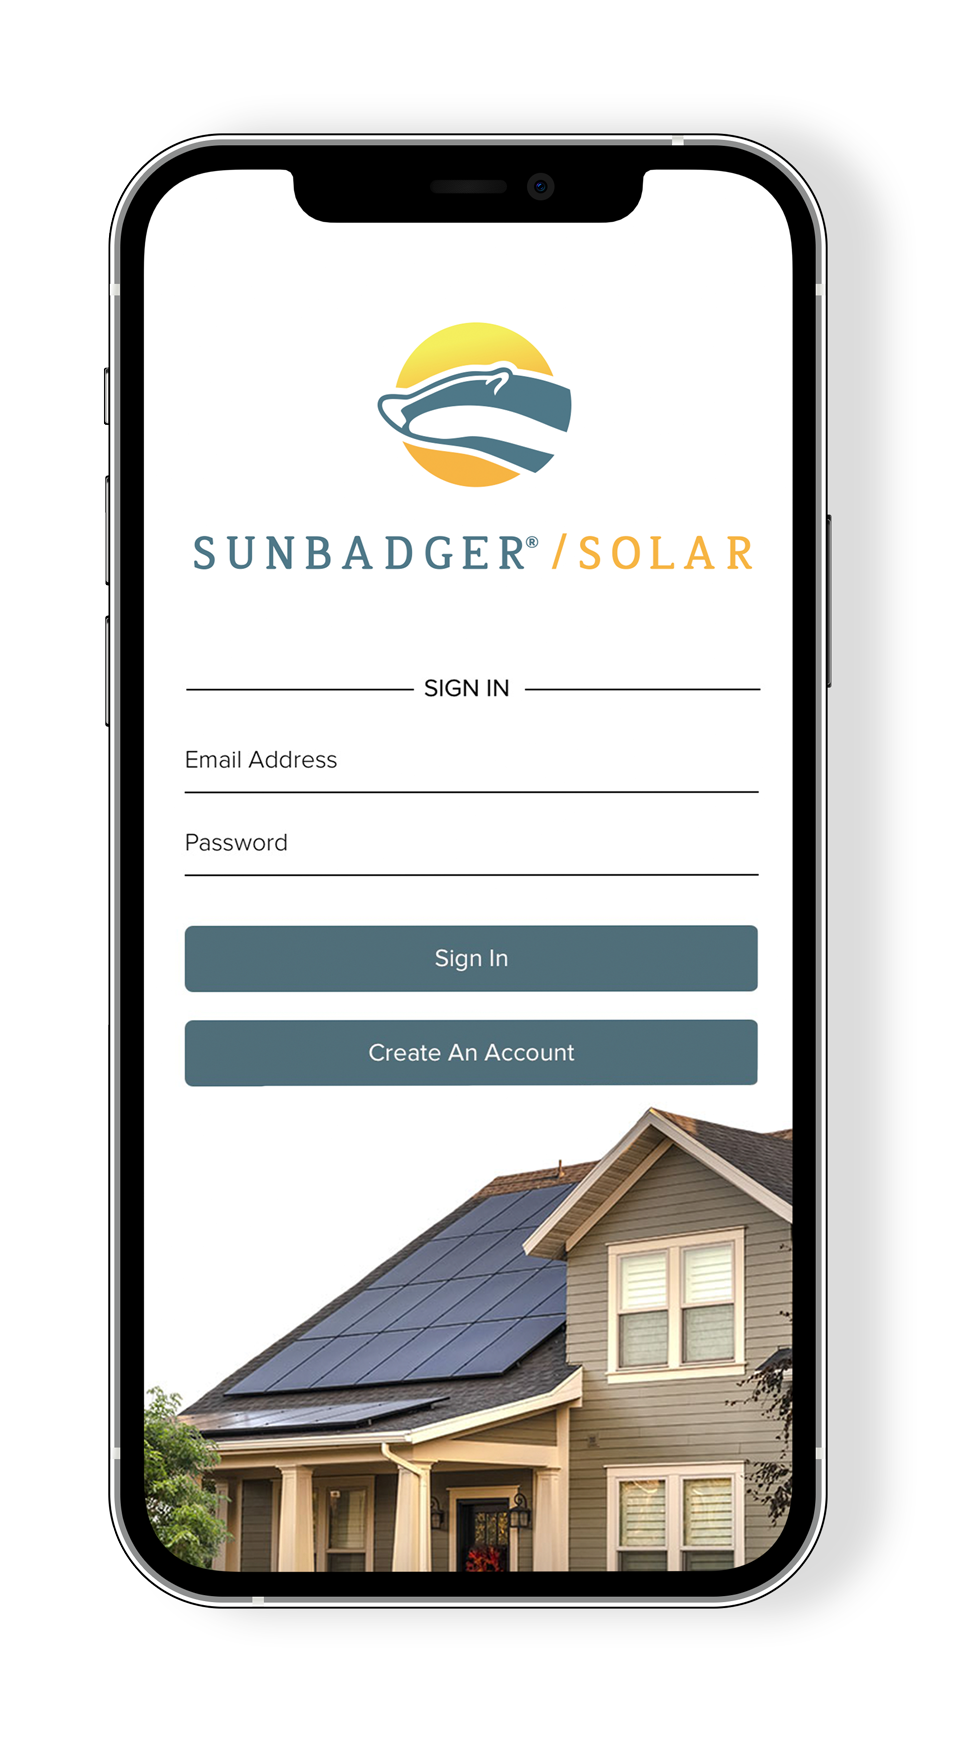 Referral Program | We are increasing our solar referral payout by 50%! That means instead of getting the normal $599, you will get paid $899 for every sold referral.*